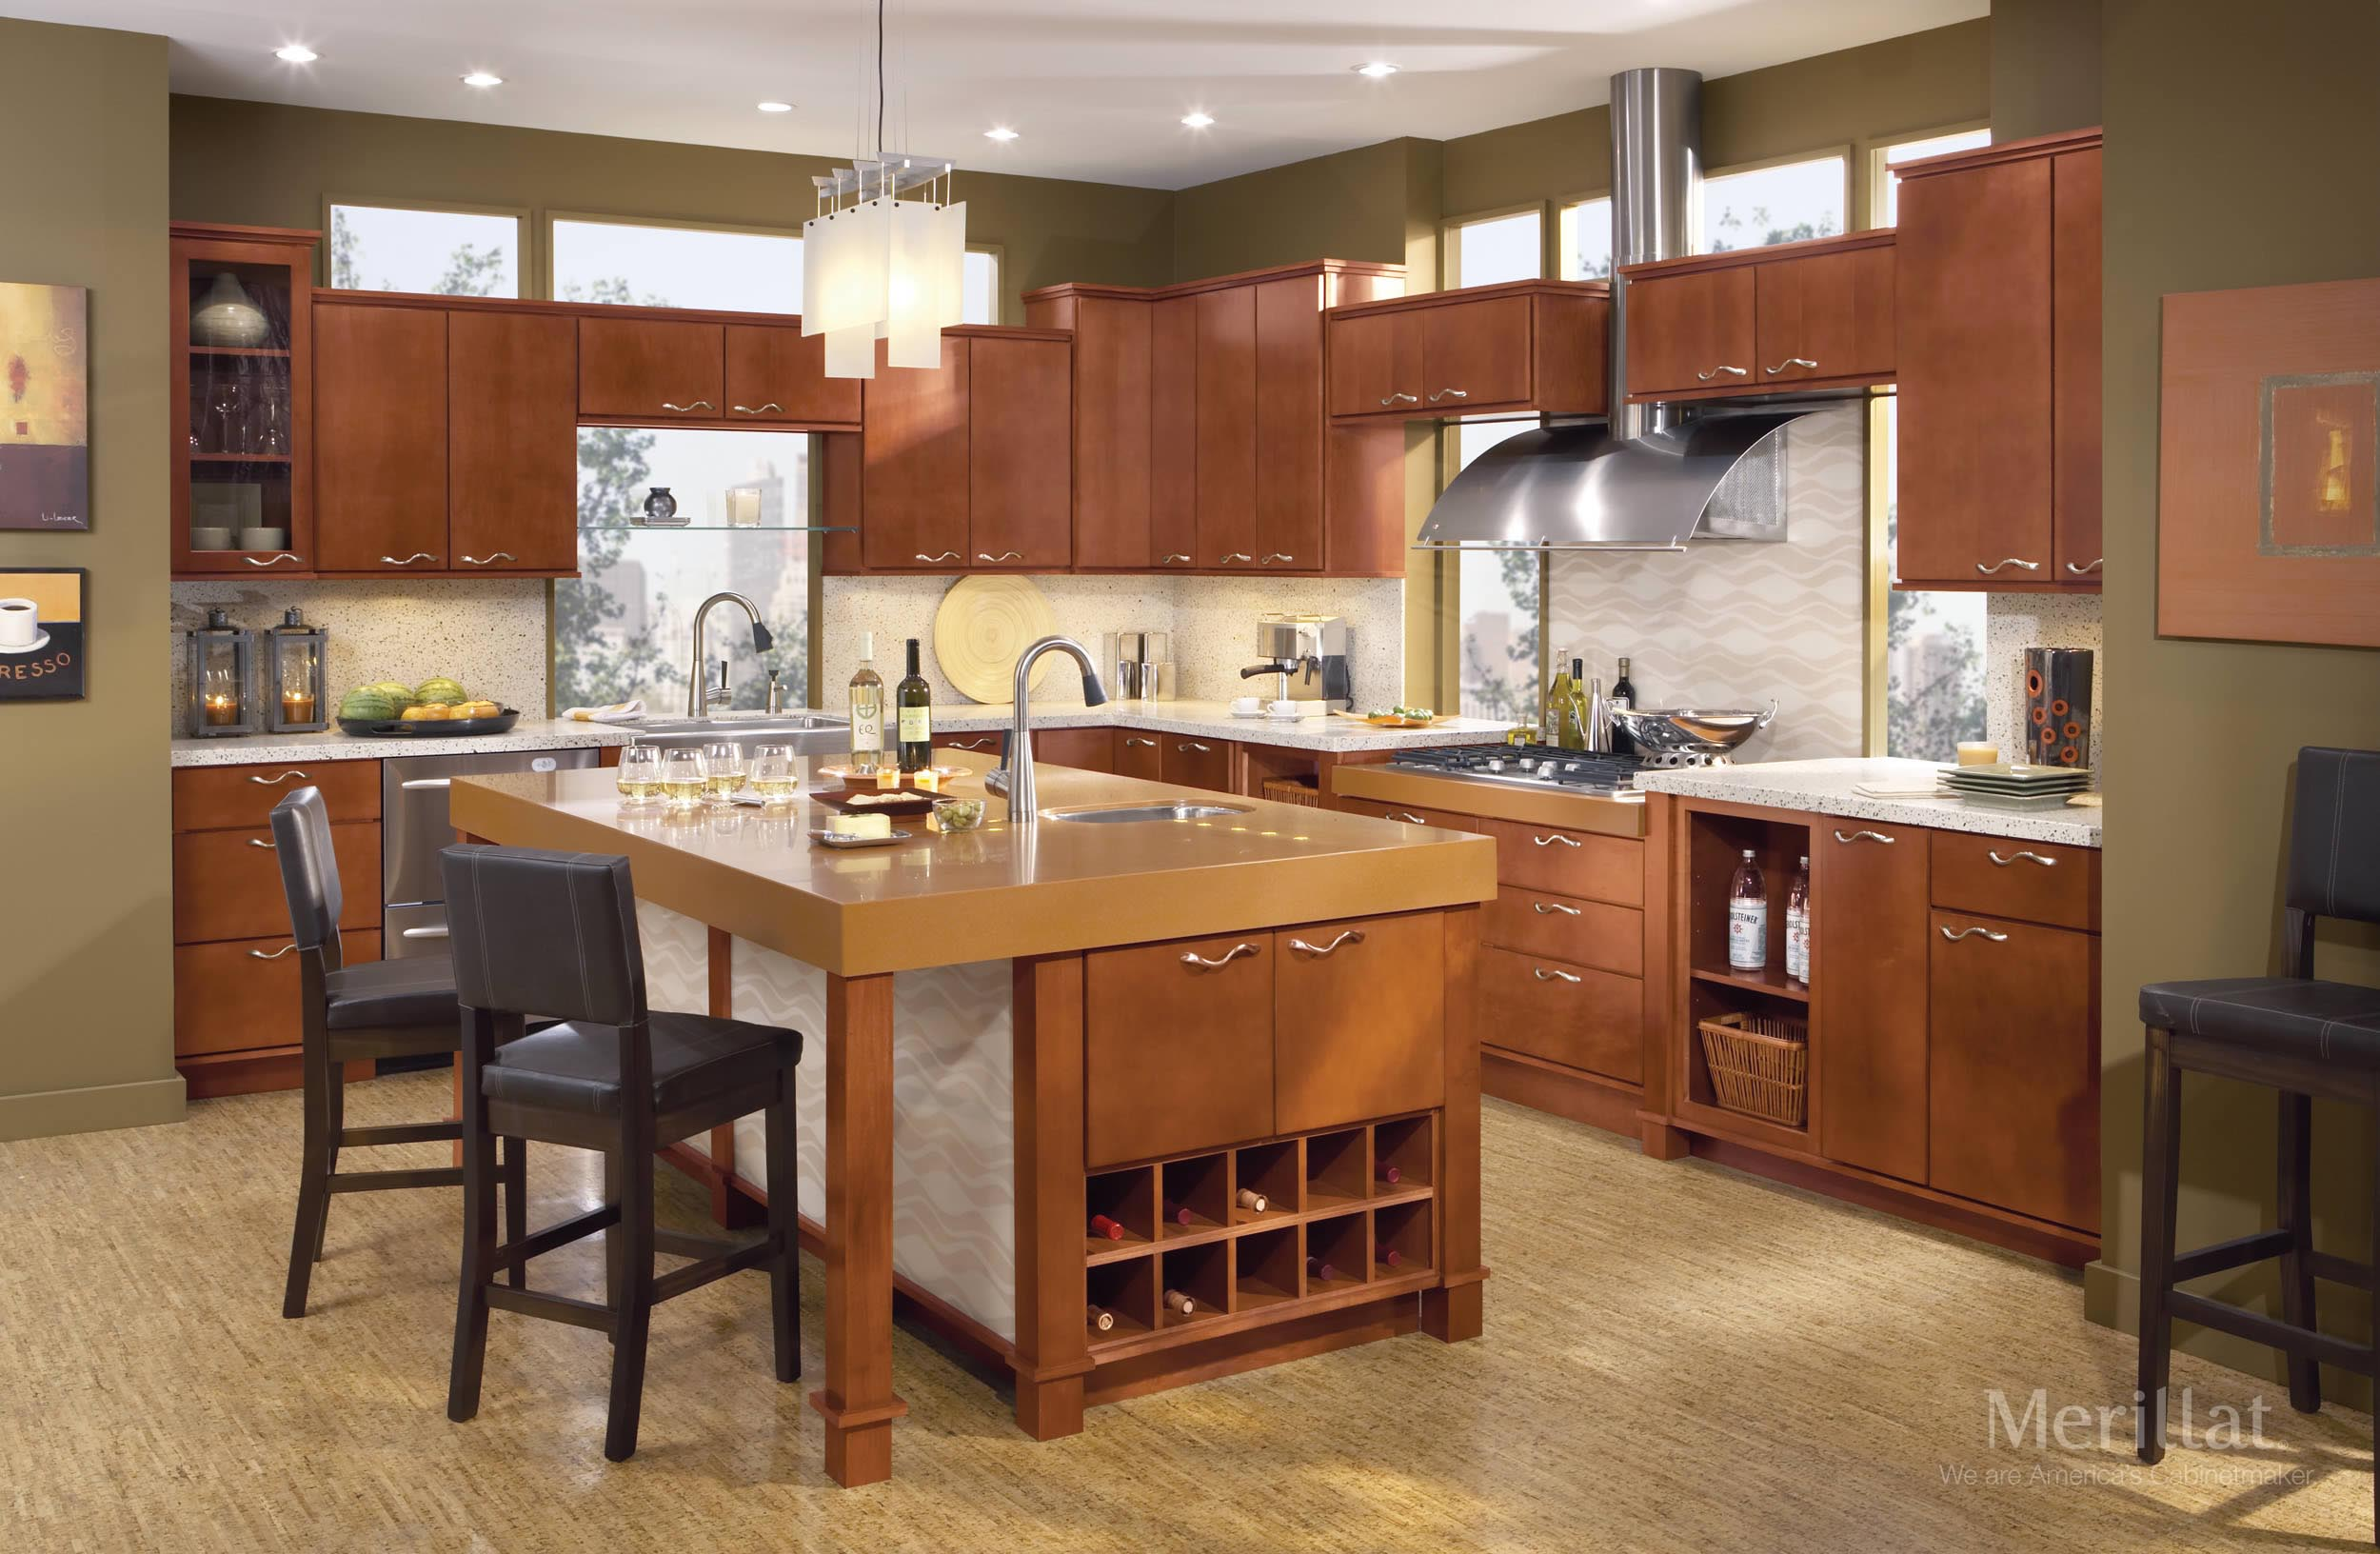 merillat classic fusion in maple sable merillat - Merillat Classic Kitchen Cabinets